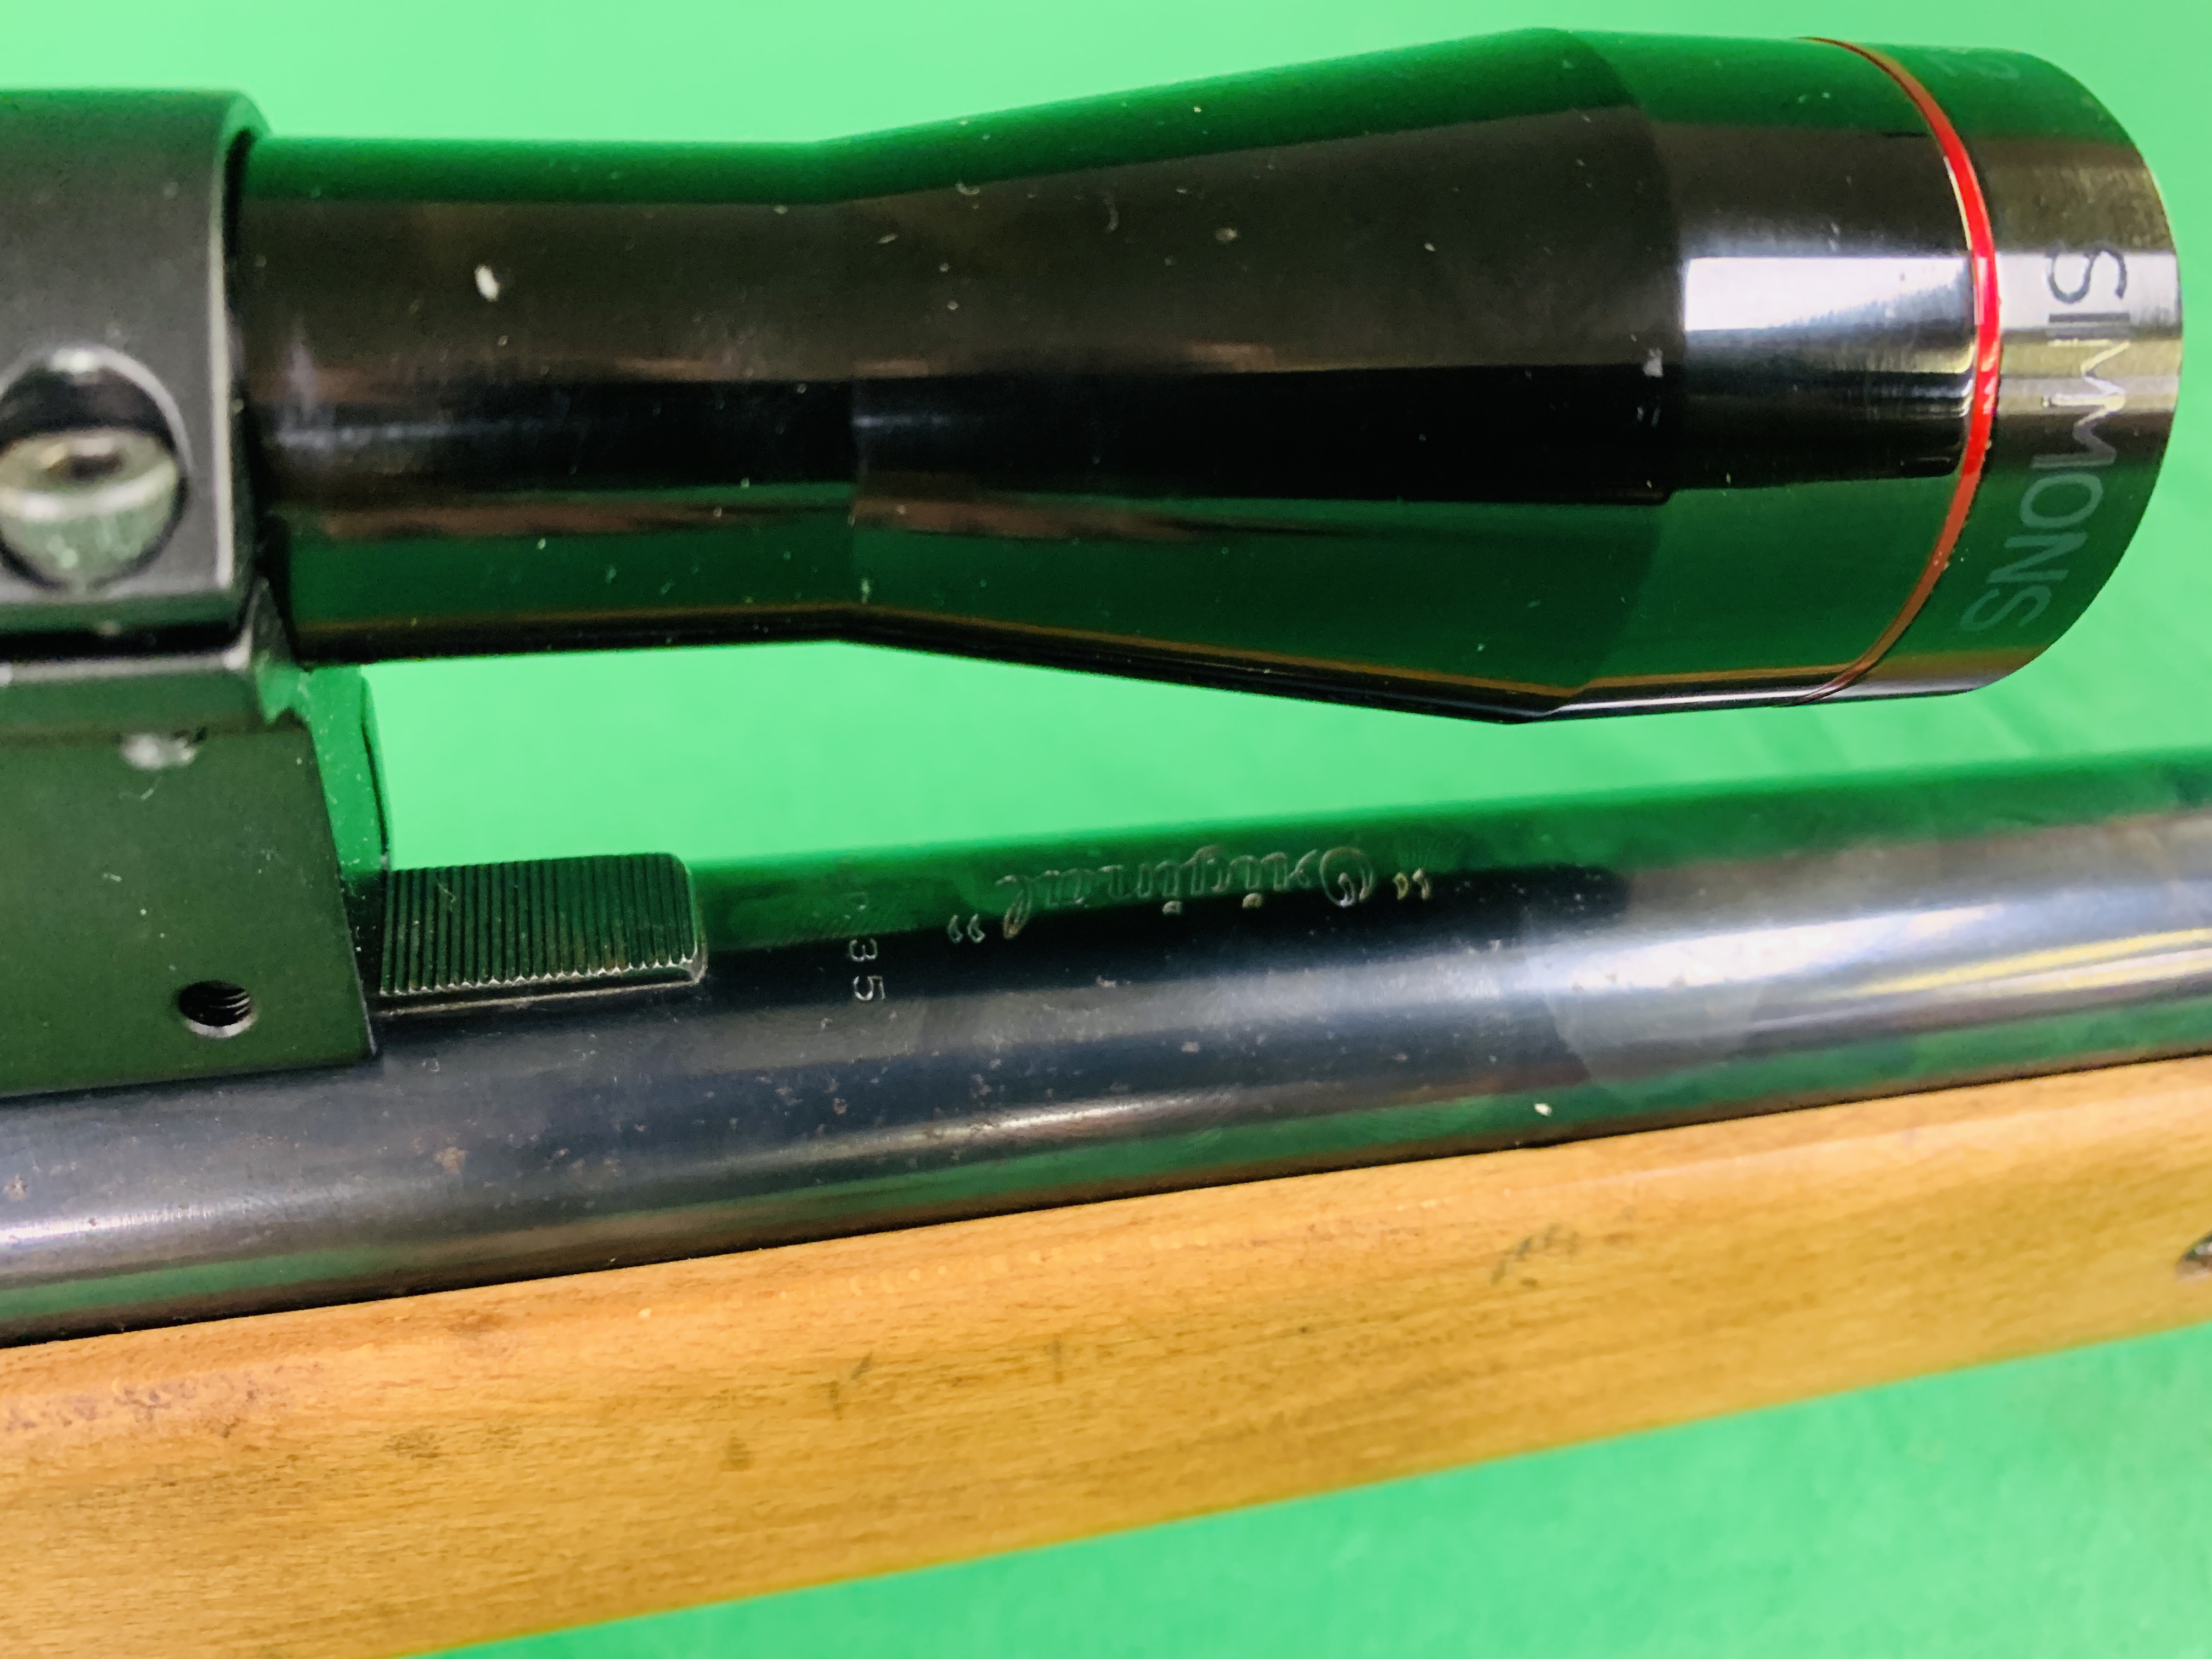 """AN """"ORIGINAL"""" MODEL 35 .22 BREAK BARREL AIR RIFLE FITTED WITH SIMMONS 4. - Image 6 of 10"""